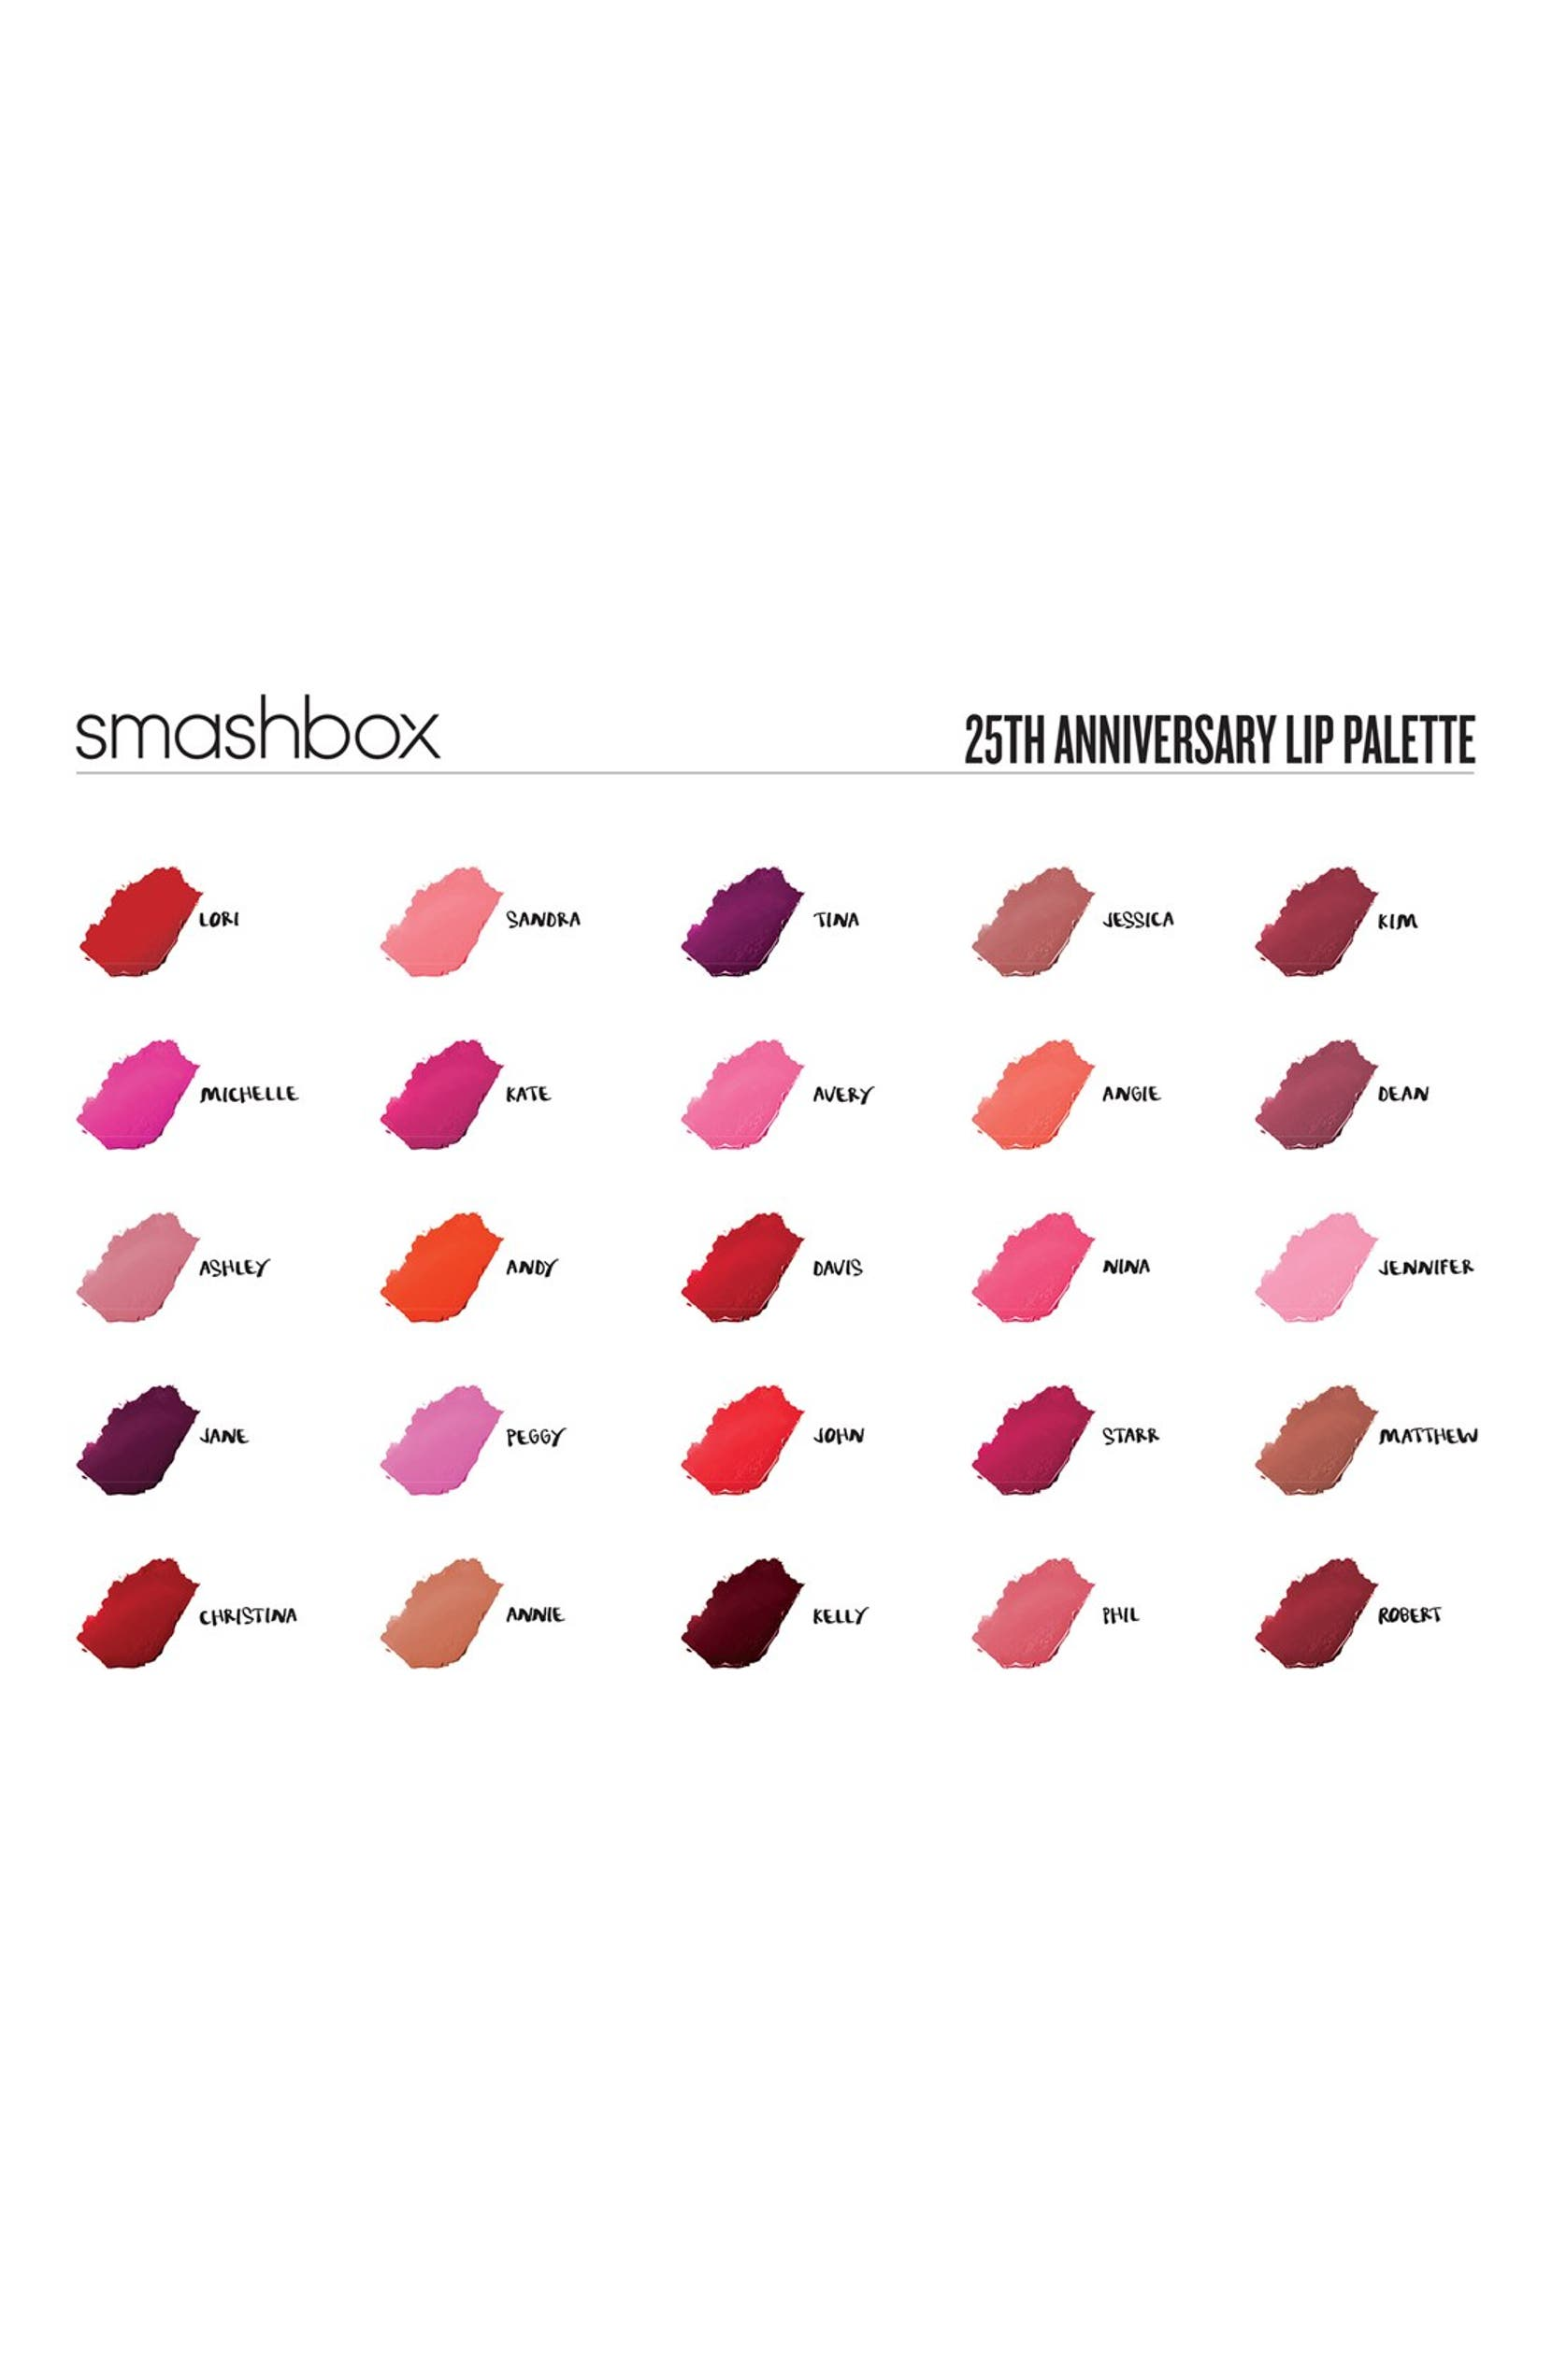 Smashbox Be Legendary For 25 Years Our Lips Have Been Sealed Lip Matte Lipstick Palettelimited Edition Palette Limited Nordstrom